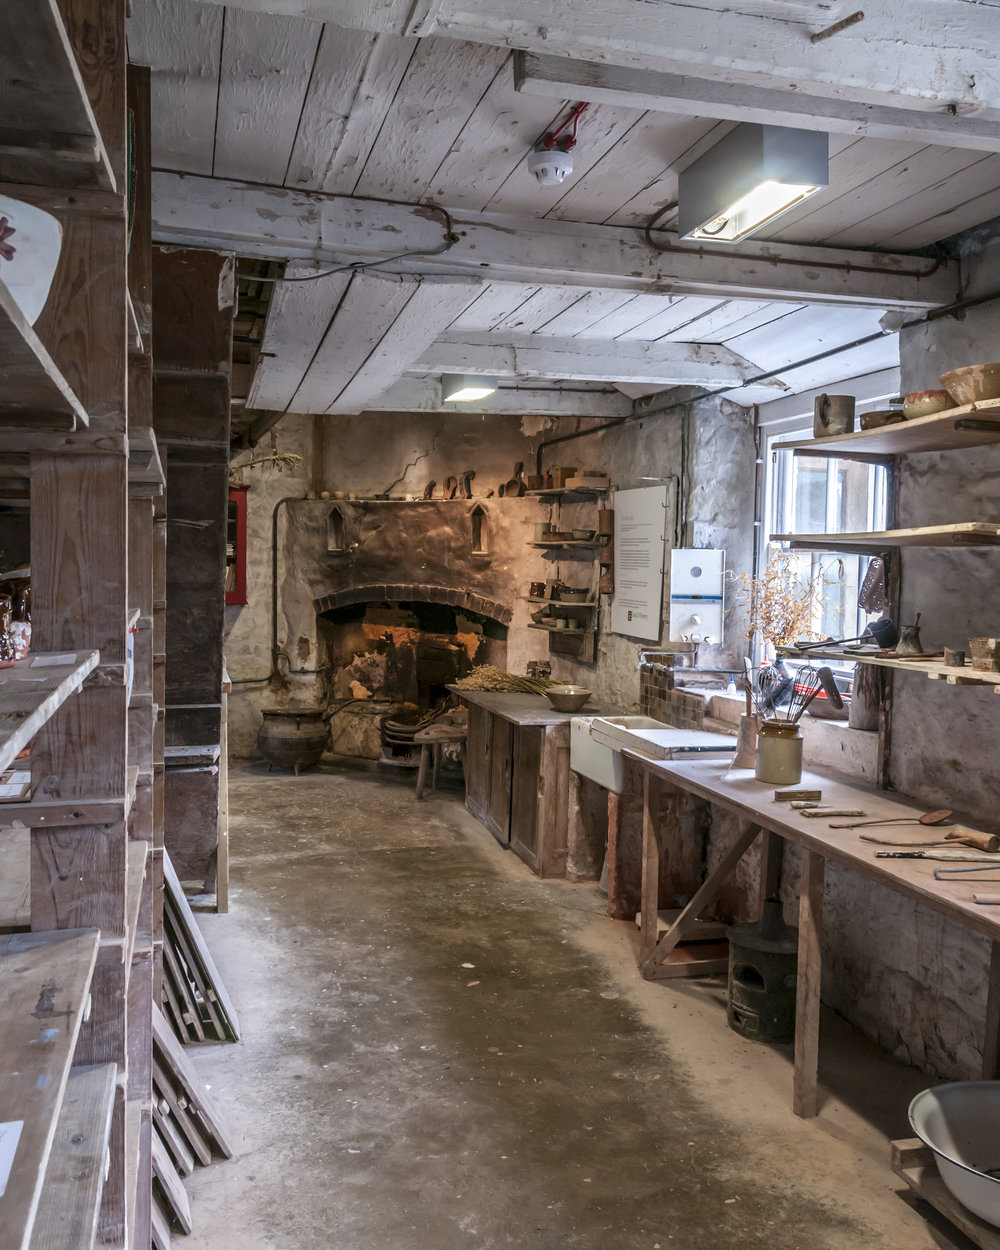 The Old Pottery, glazing room and fireplace